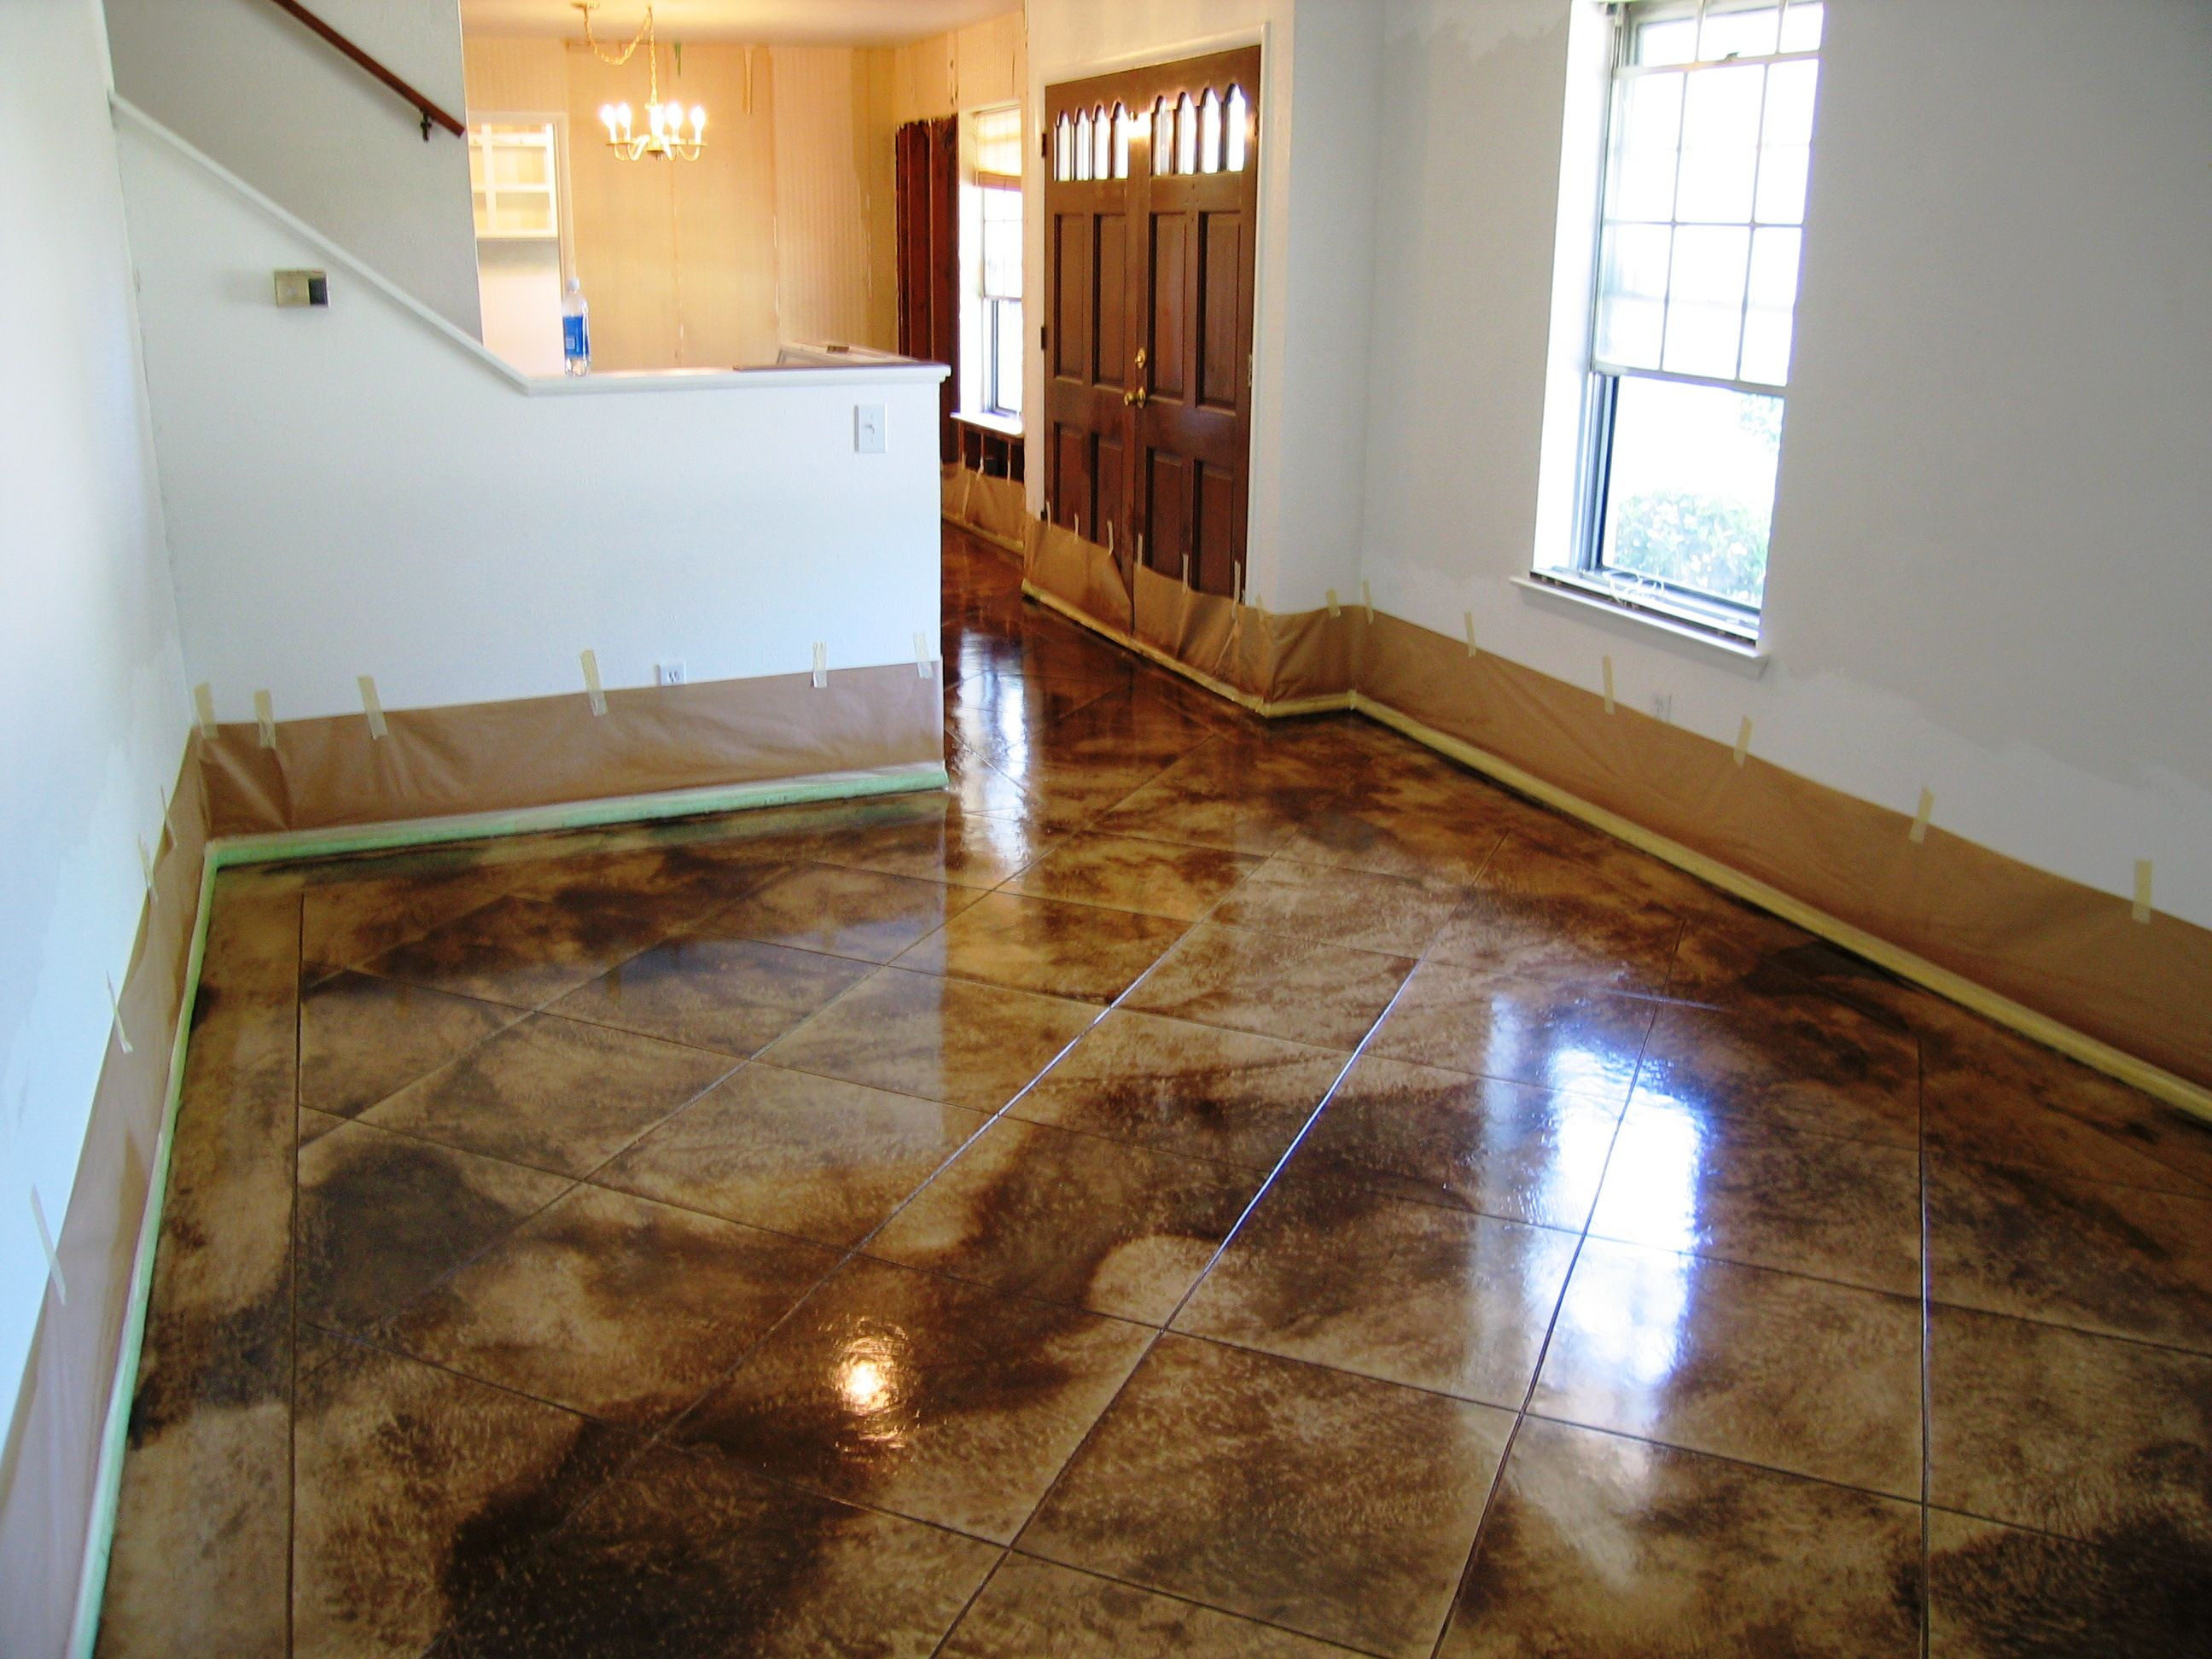 Lowes Hardwood Floor Installation Video Of Concrete Stain Colors Lowes Mi Casa Interiors Pinterest for Concrete Stain Colors Lowes